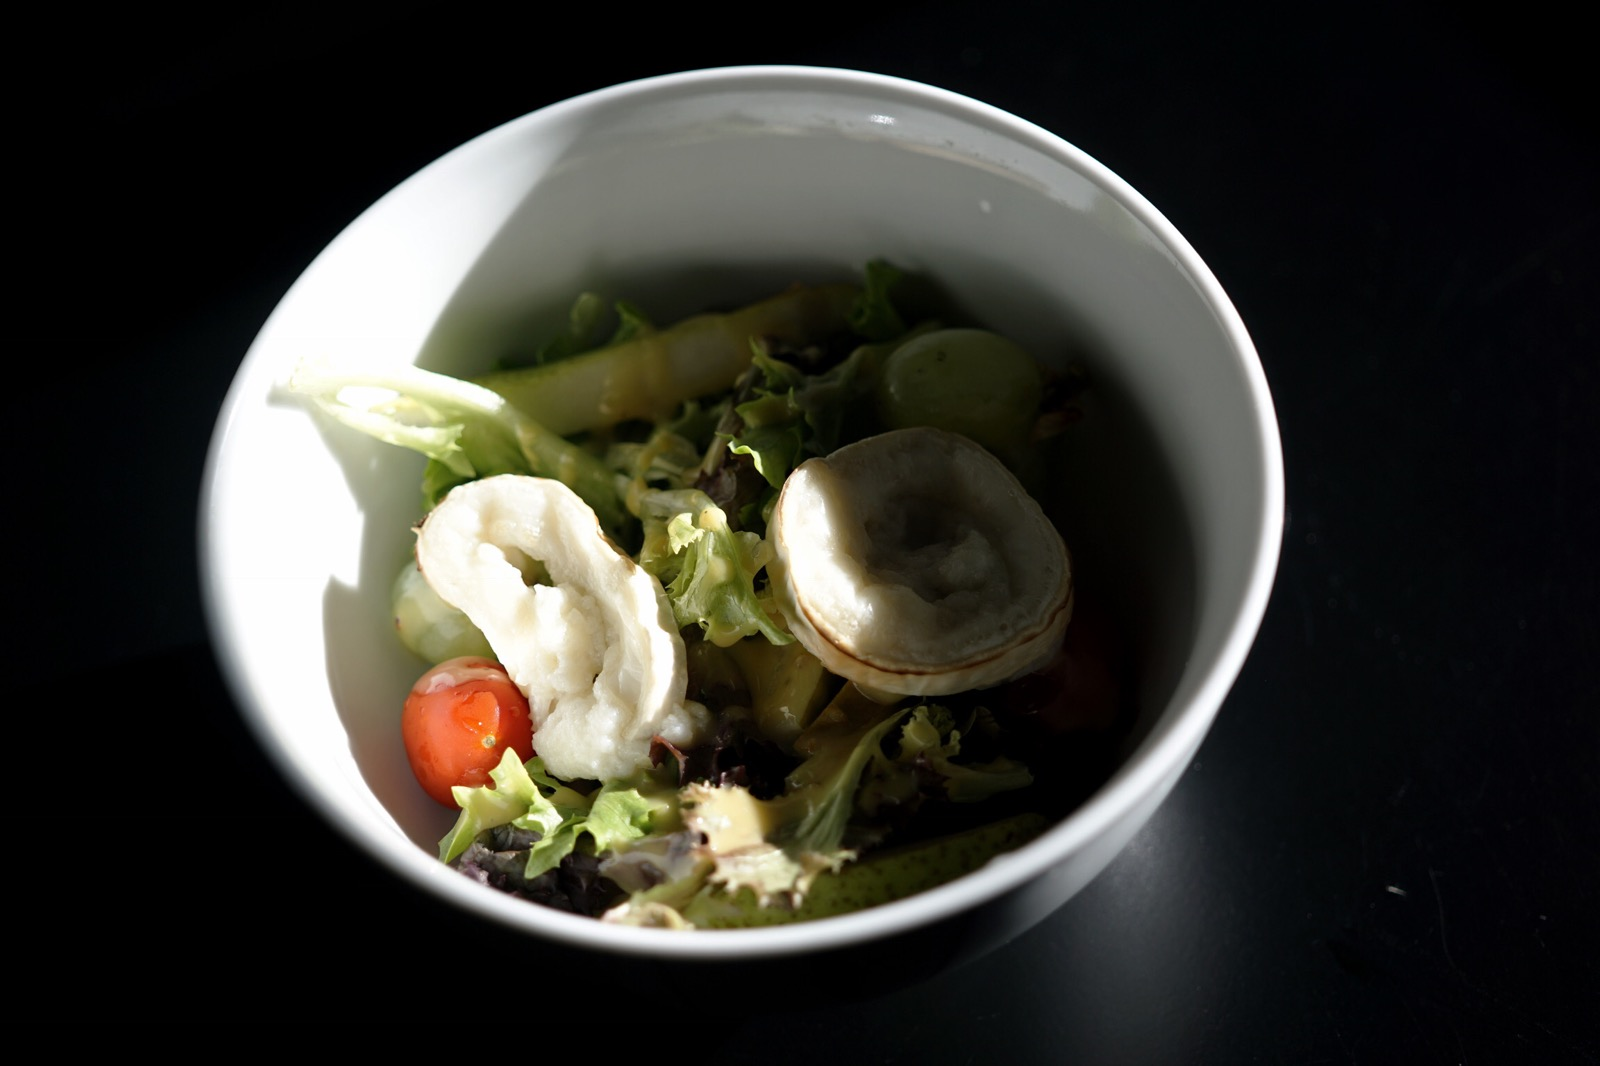 Apple and goat cheese salad recipe